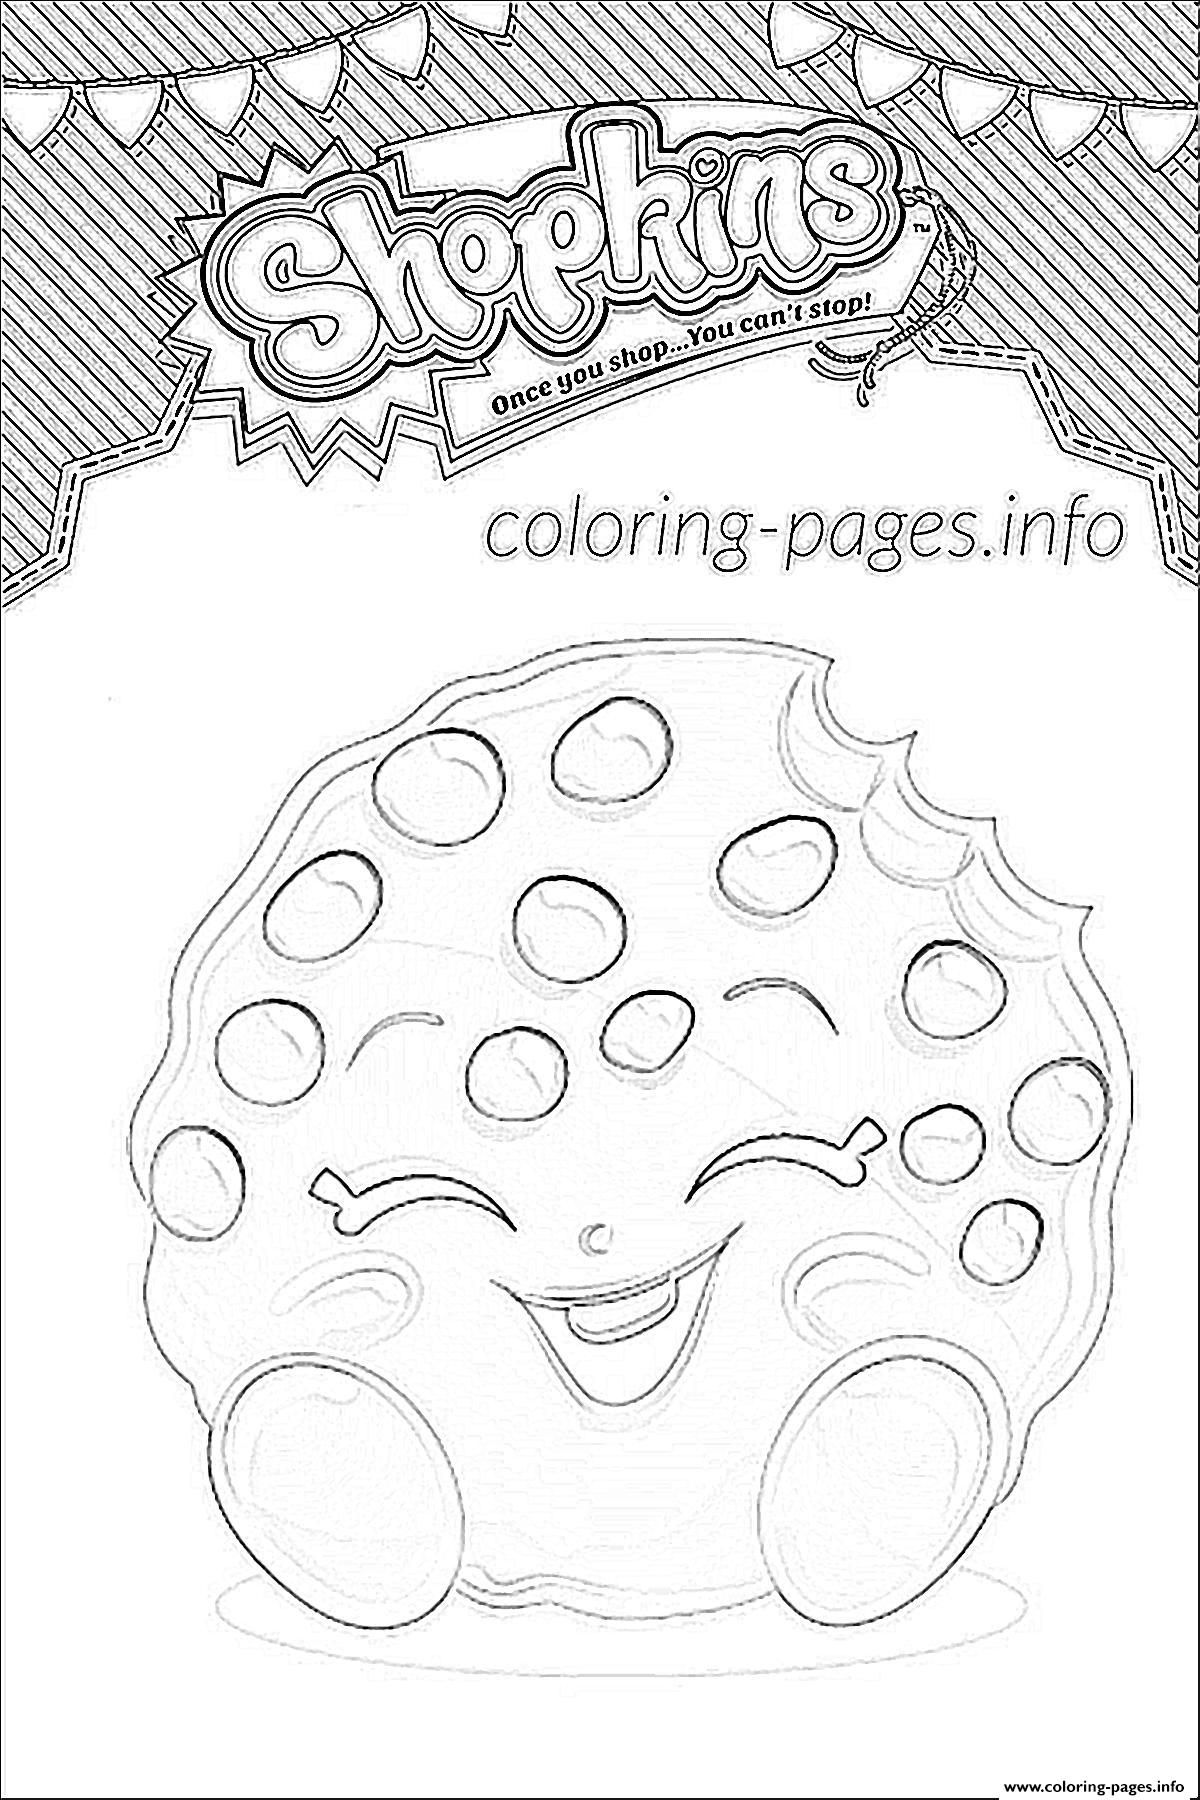 Shopkins coloring pages to color online - Shopkins Kooky Cookie Shoppies Coloring Pages Printable And Coloring Book To Print For Free Find More Coloring Pages Online For Kids And Adults Of Shopkins